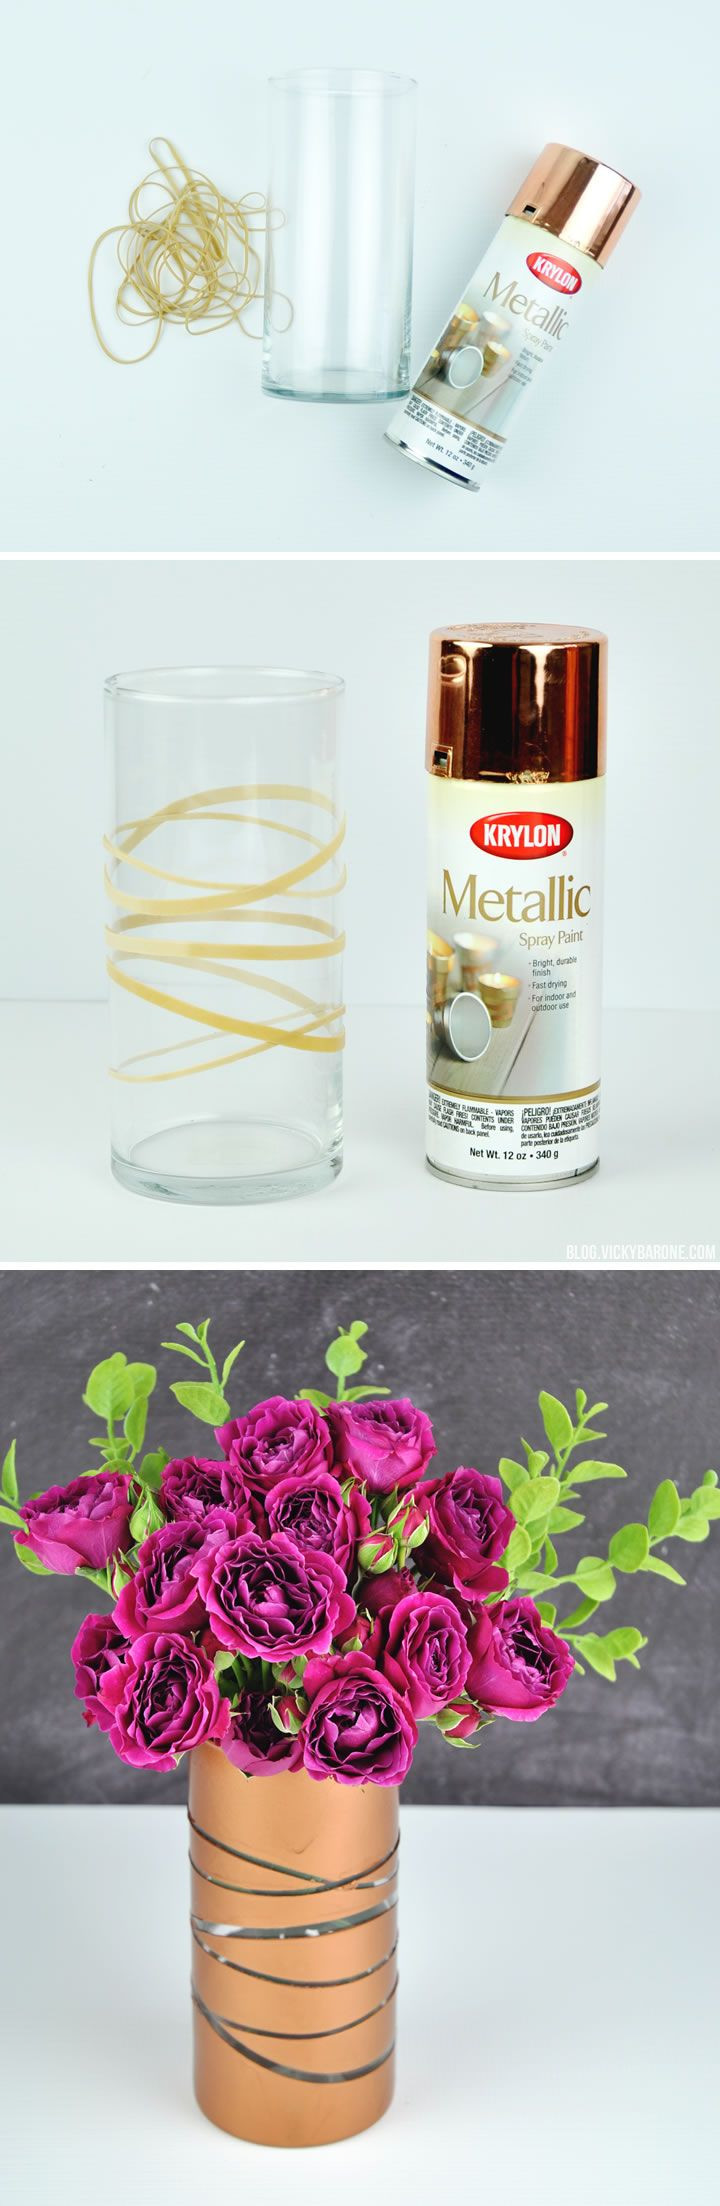 plastic vases walmart of 116 best sabrinas images on pinterest vase fillers pine cones pertaining to diy metallic vase